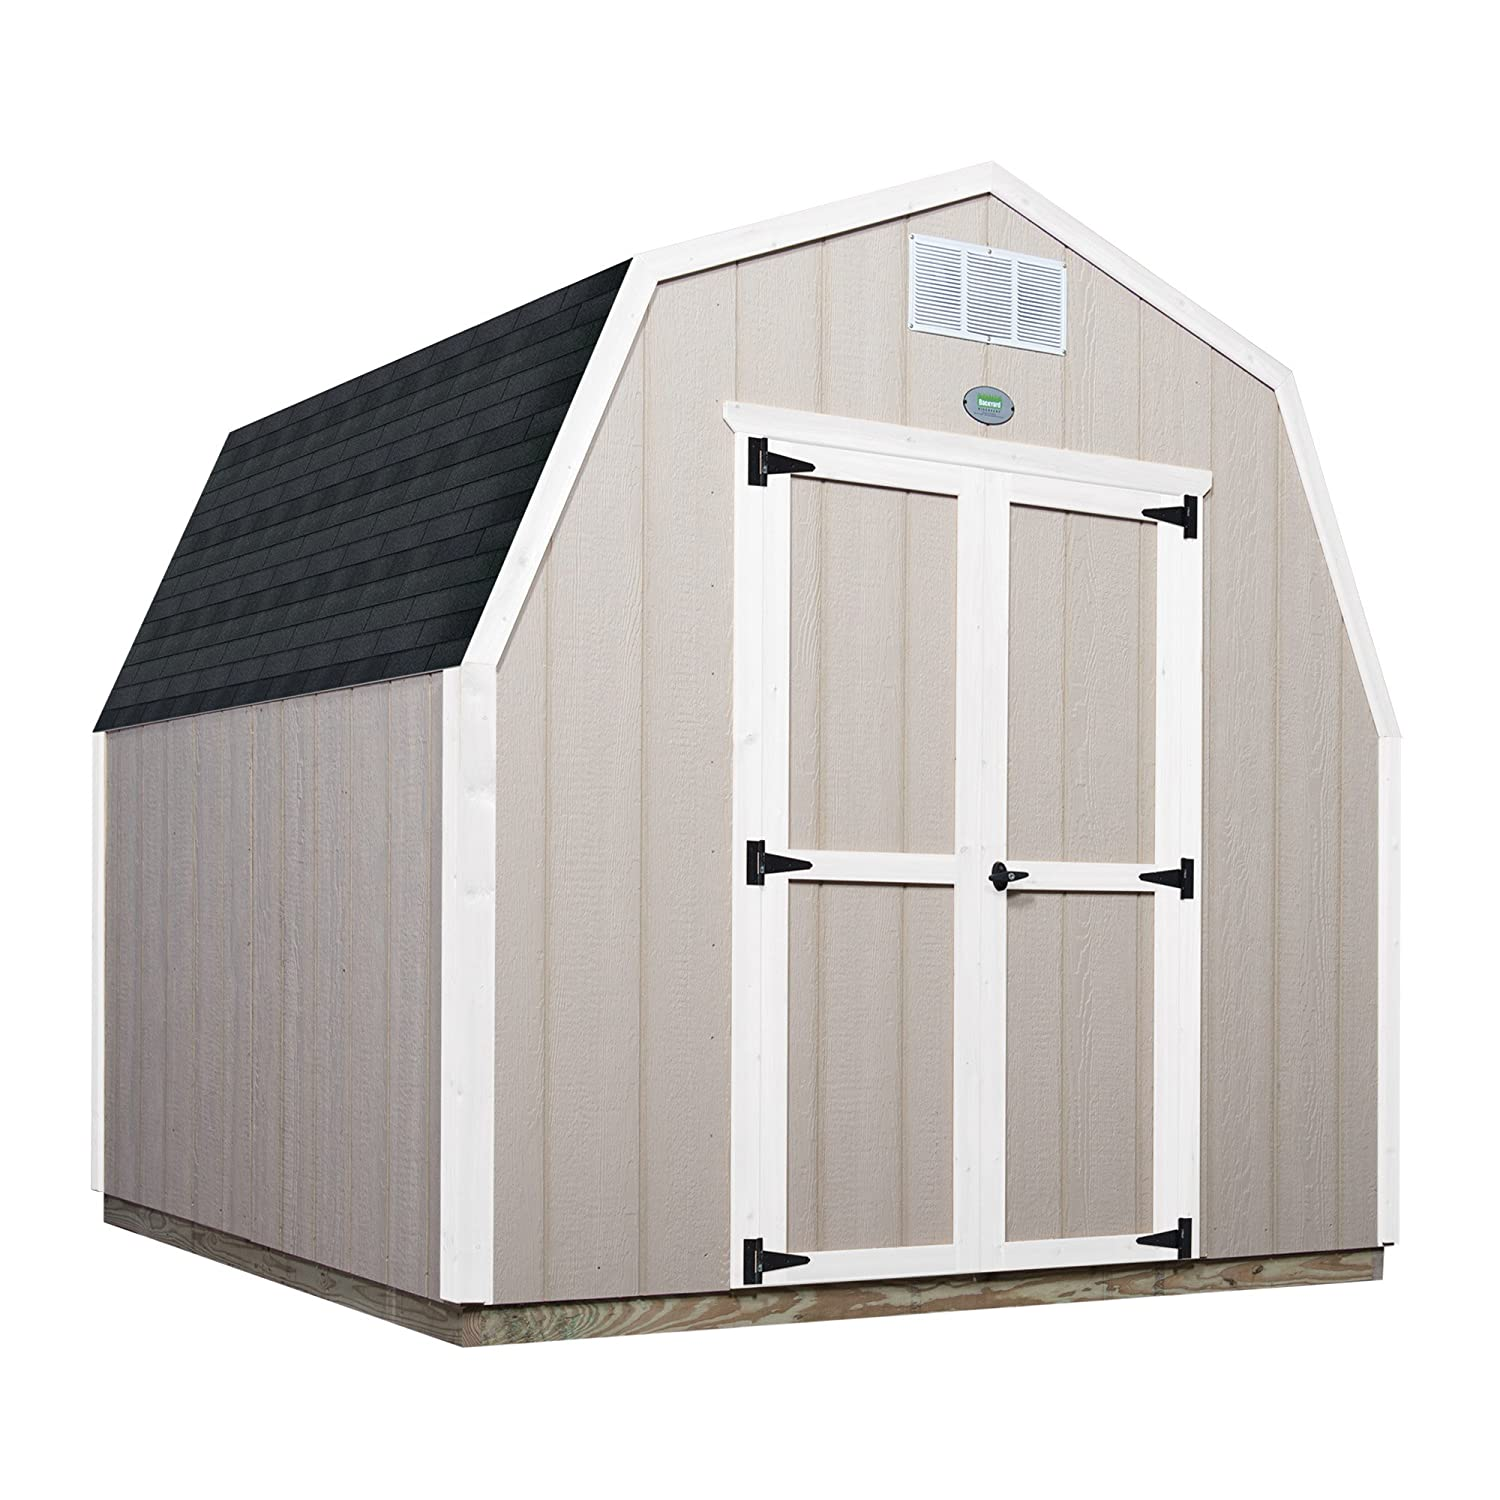 Amazon.com : Ready Shed Easy Install Shed With All Materials ...